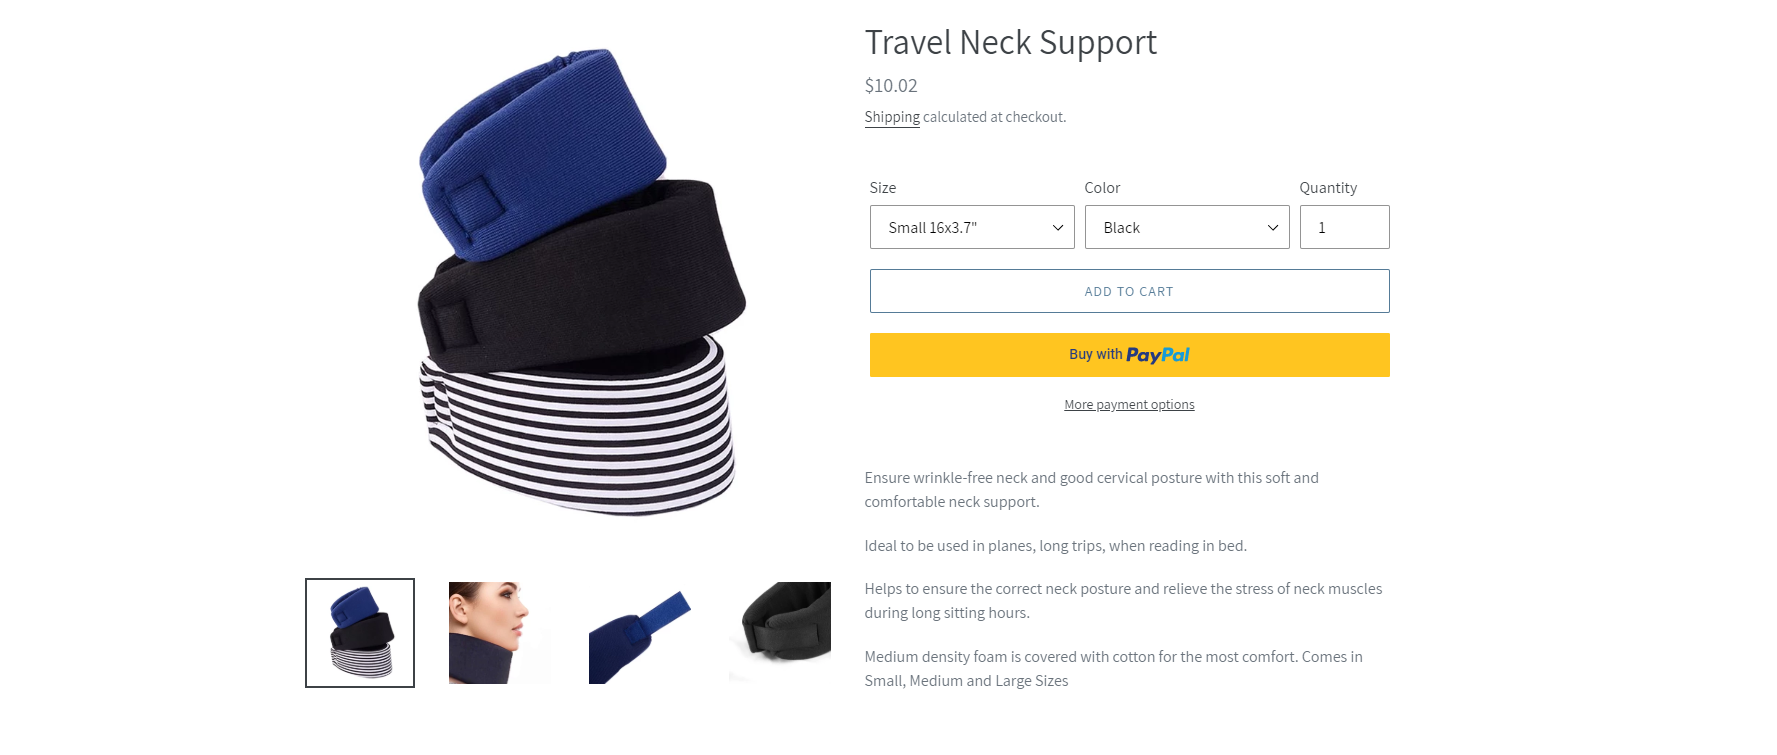 skin aging travel neck support